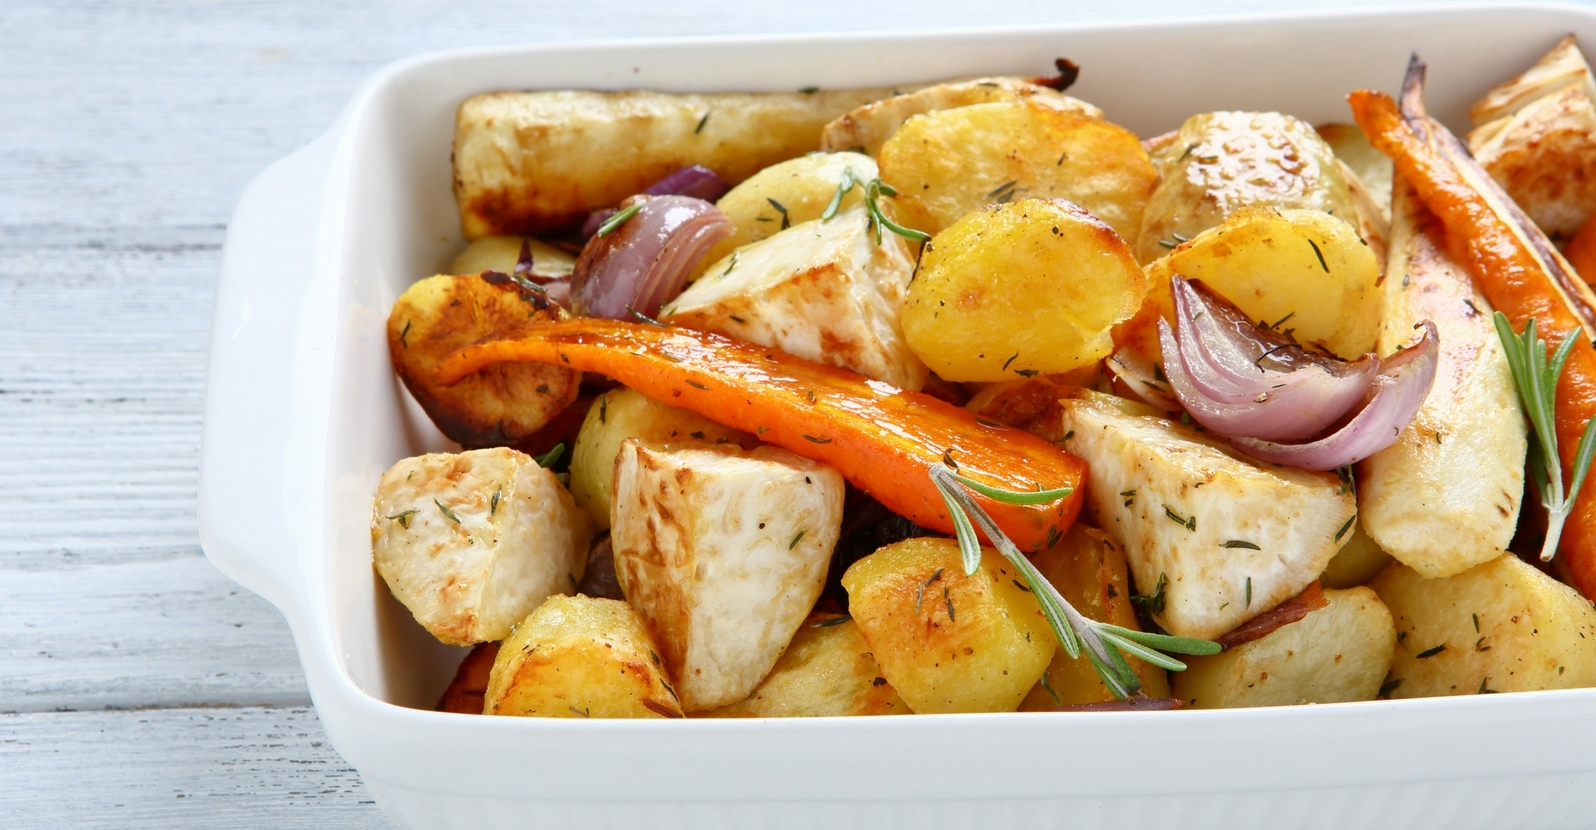 Carrots & Potatoes Roasted with Onion & Garlic